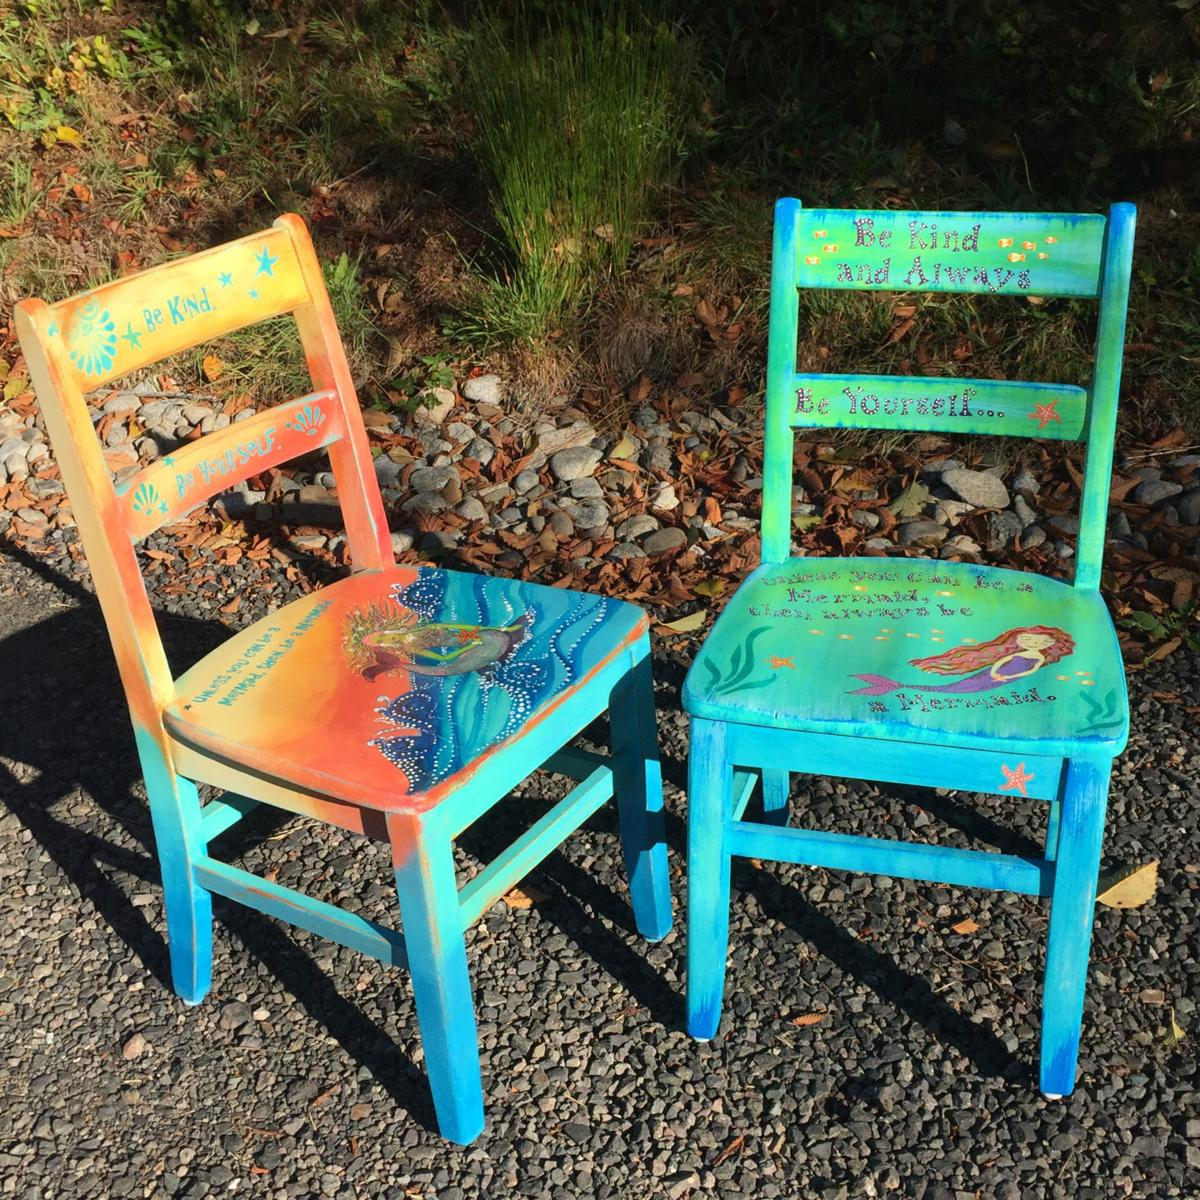 Mermaid Chairs 20th Chair-ity event